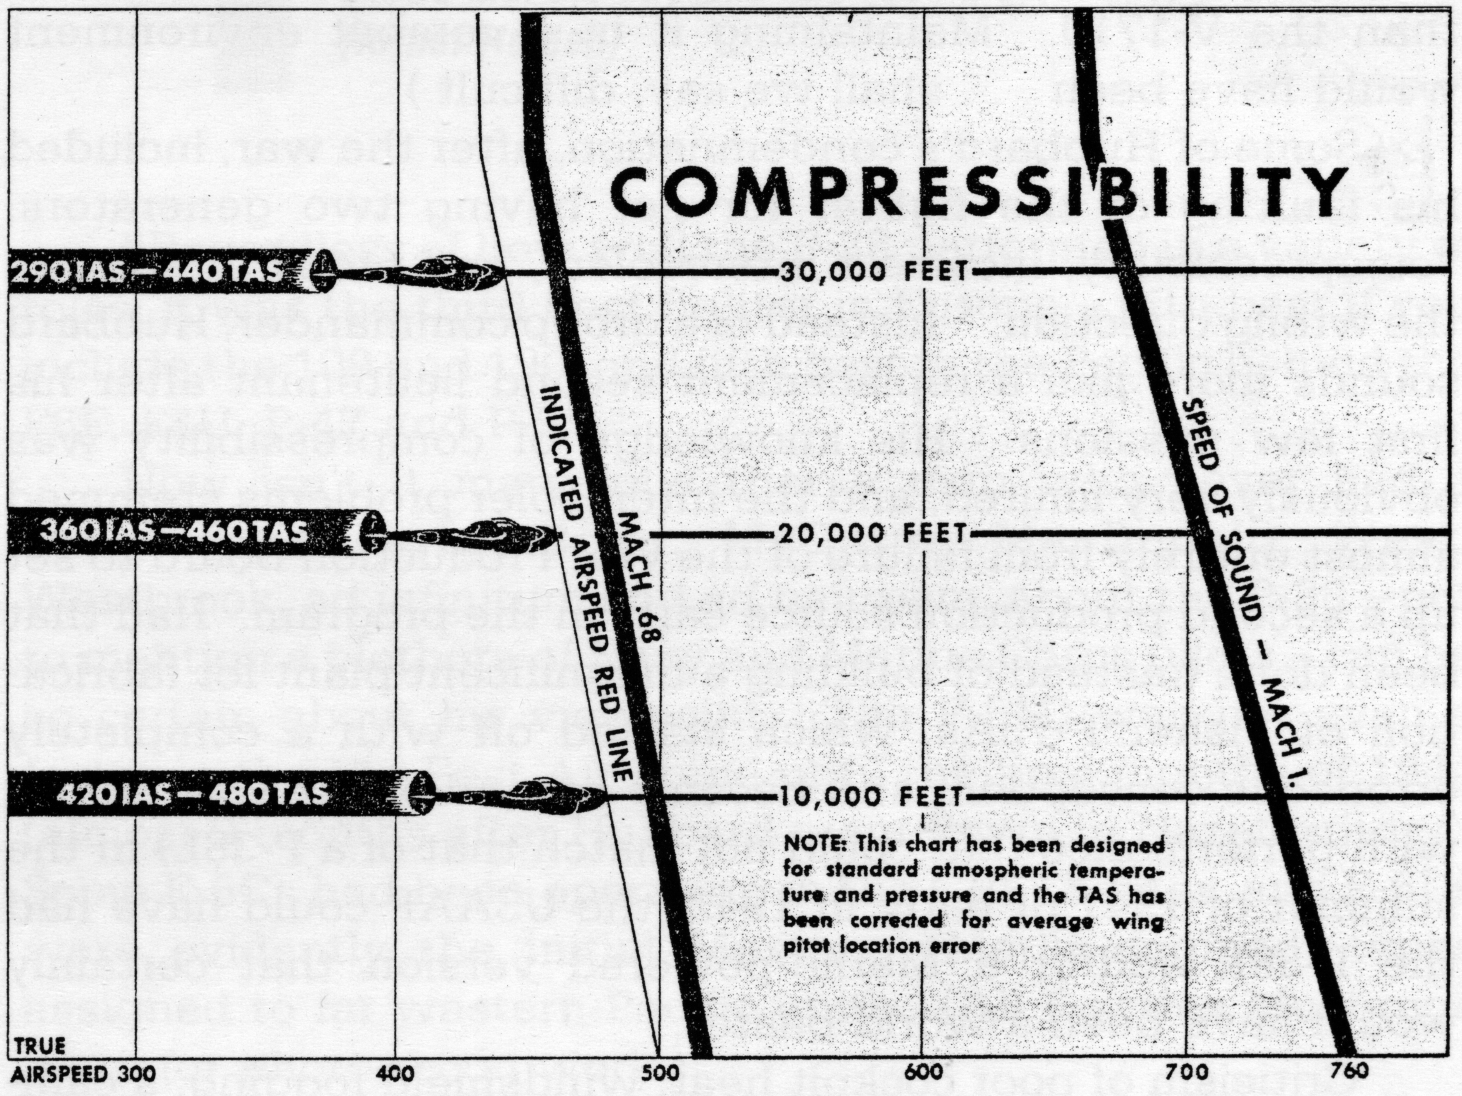 p 38 pilot training manual compressibility chart shows speed limit vs altitude